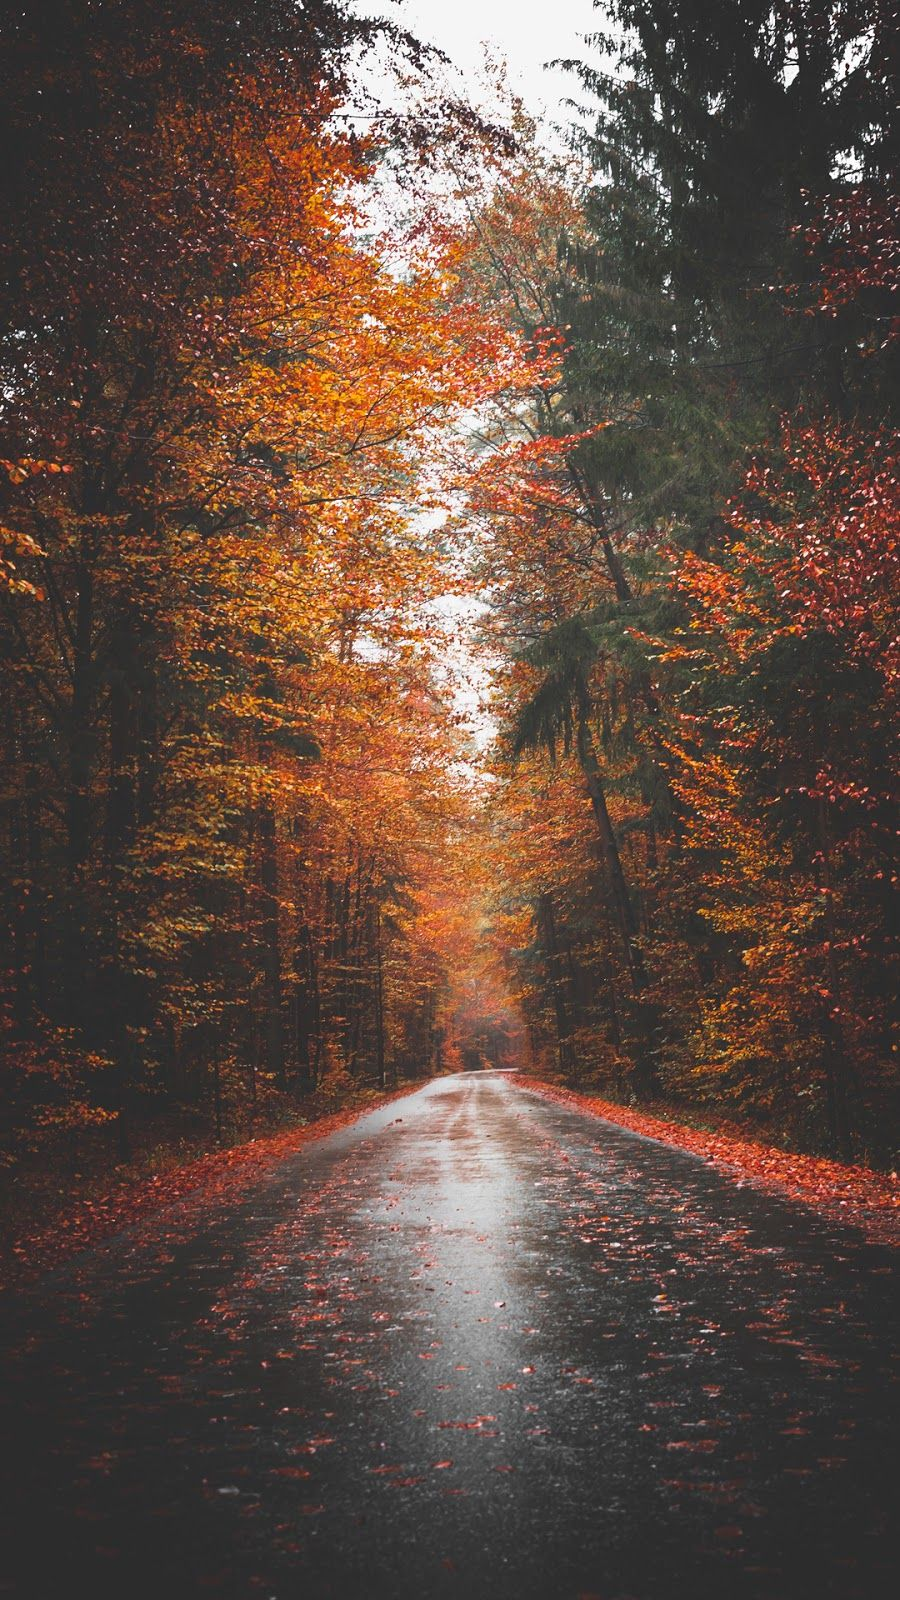 Autumn Road Iphone Wallpaper Photography Photography Wallpaper Nature Photography